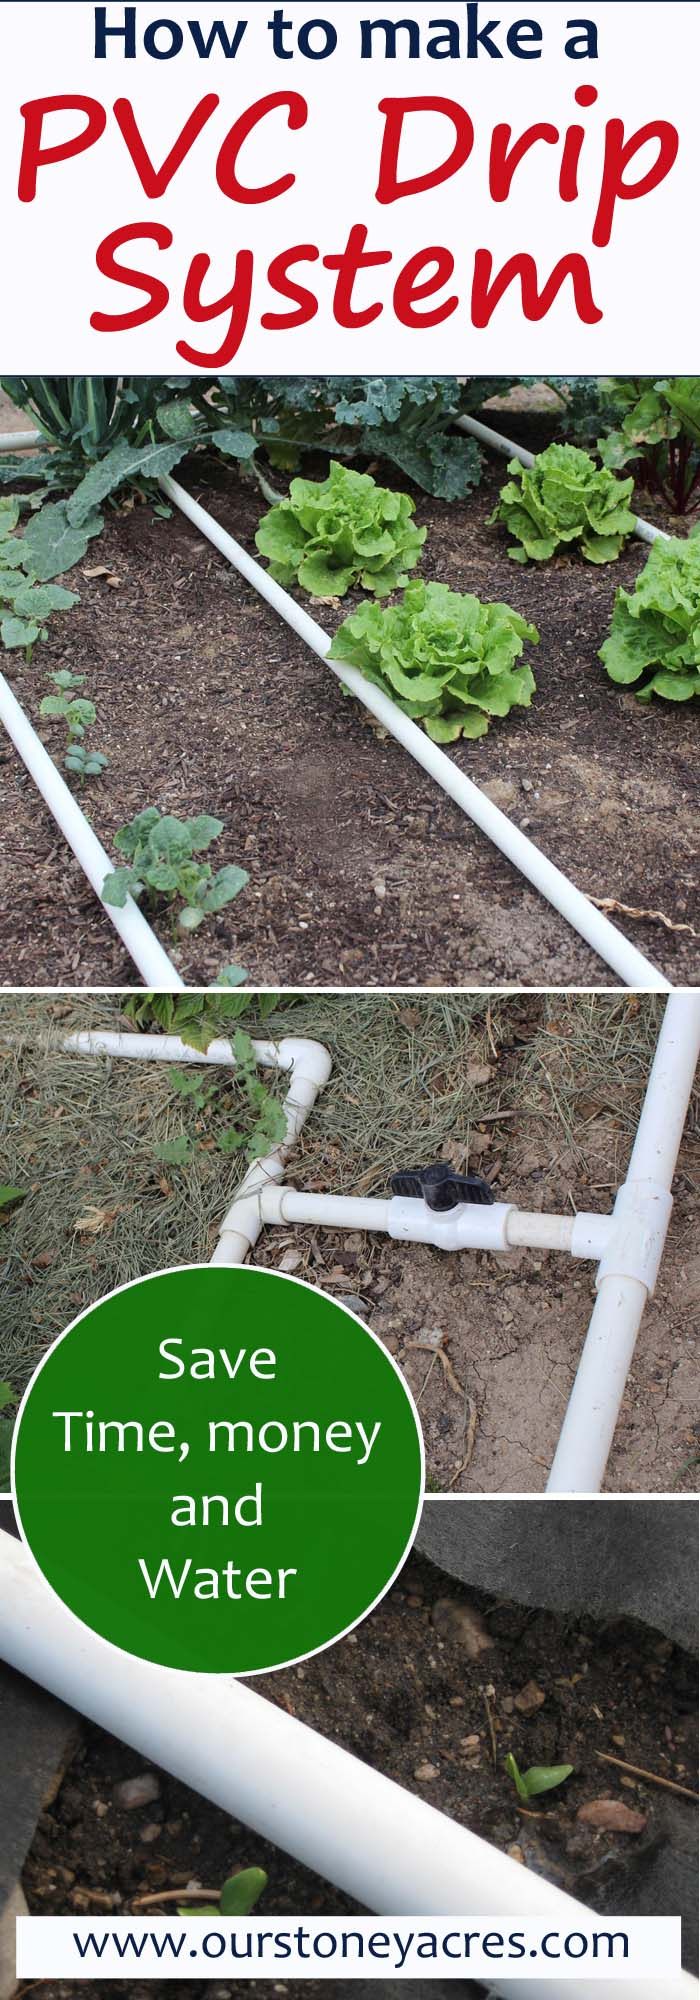 Pvc drip irrigation system for your garden stoney acres pvc drip irrigation solutioingenieria Image collections